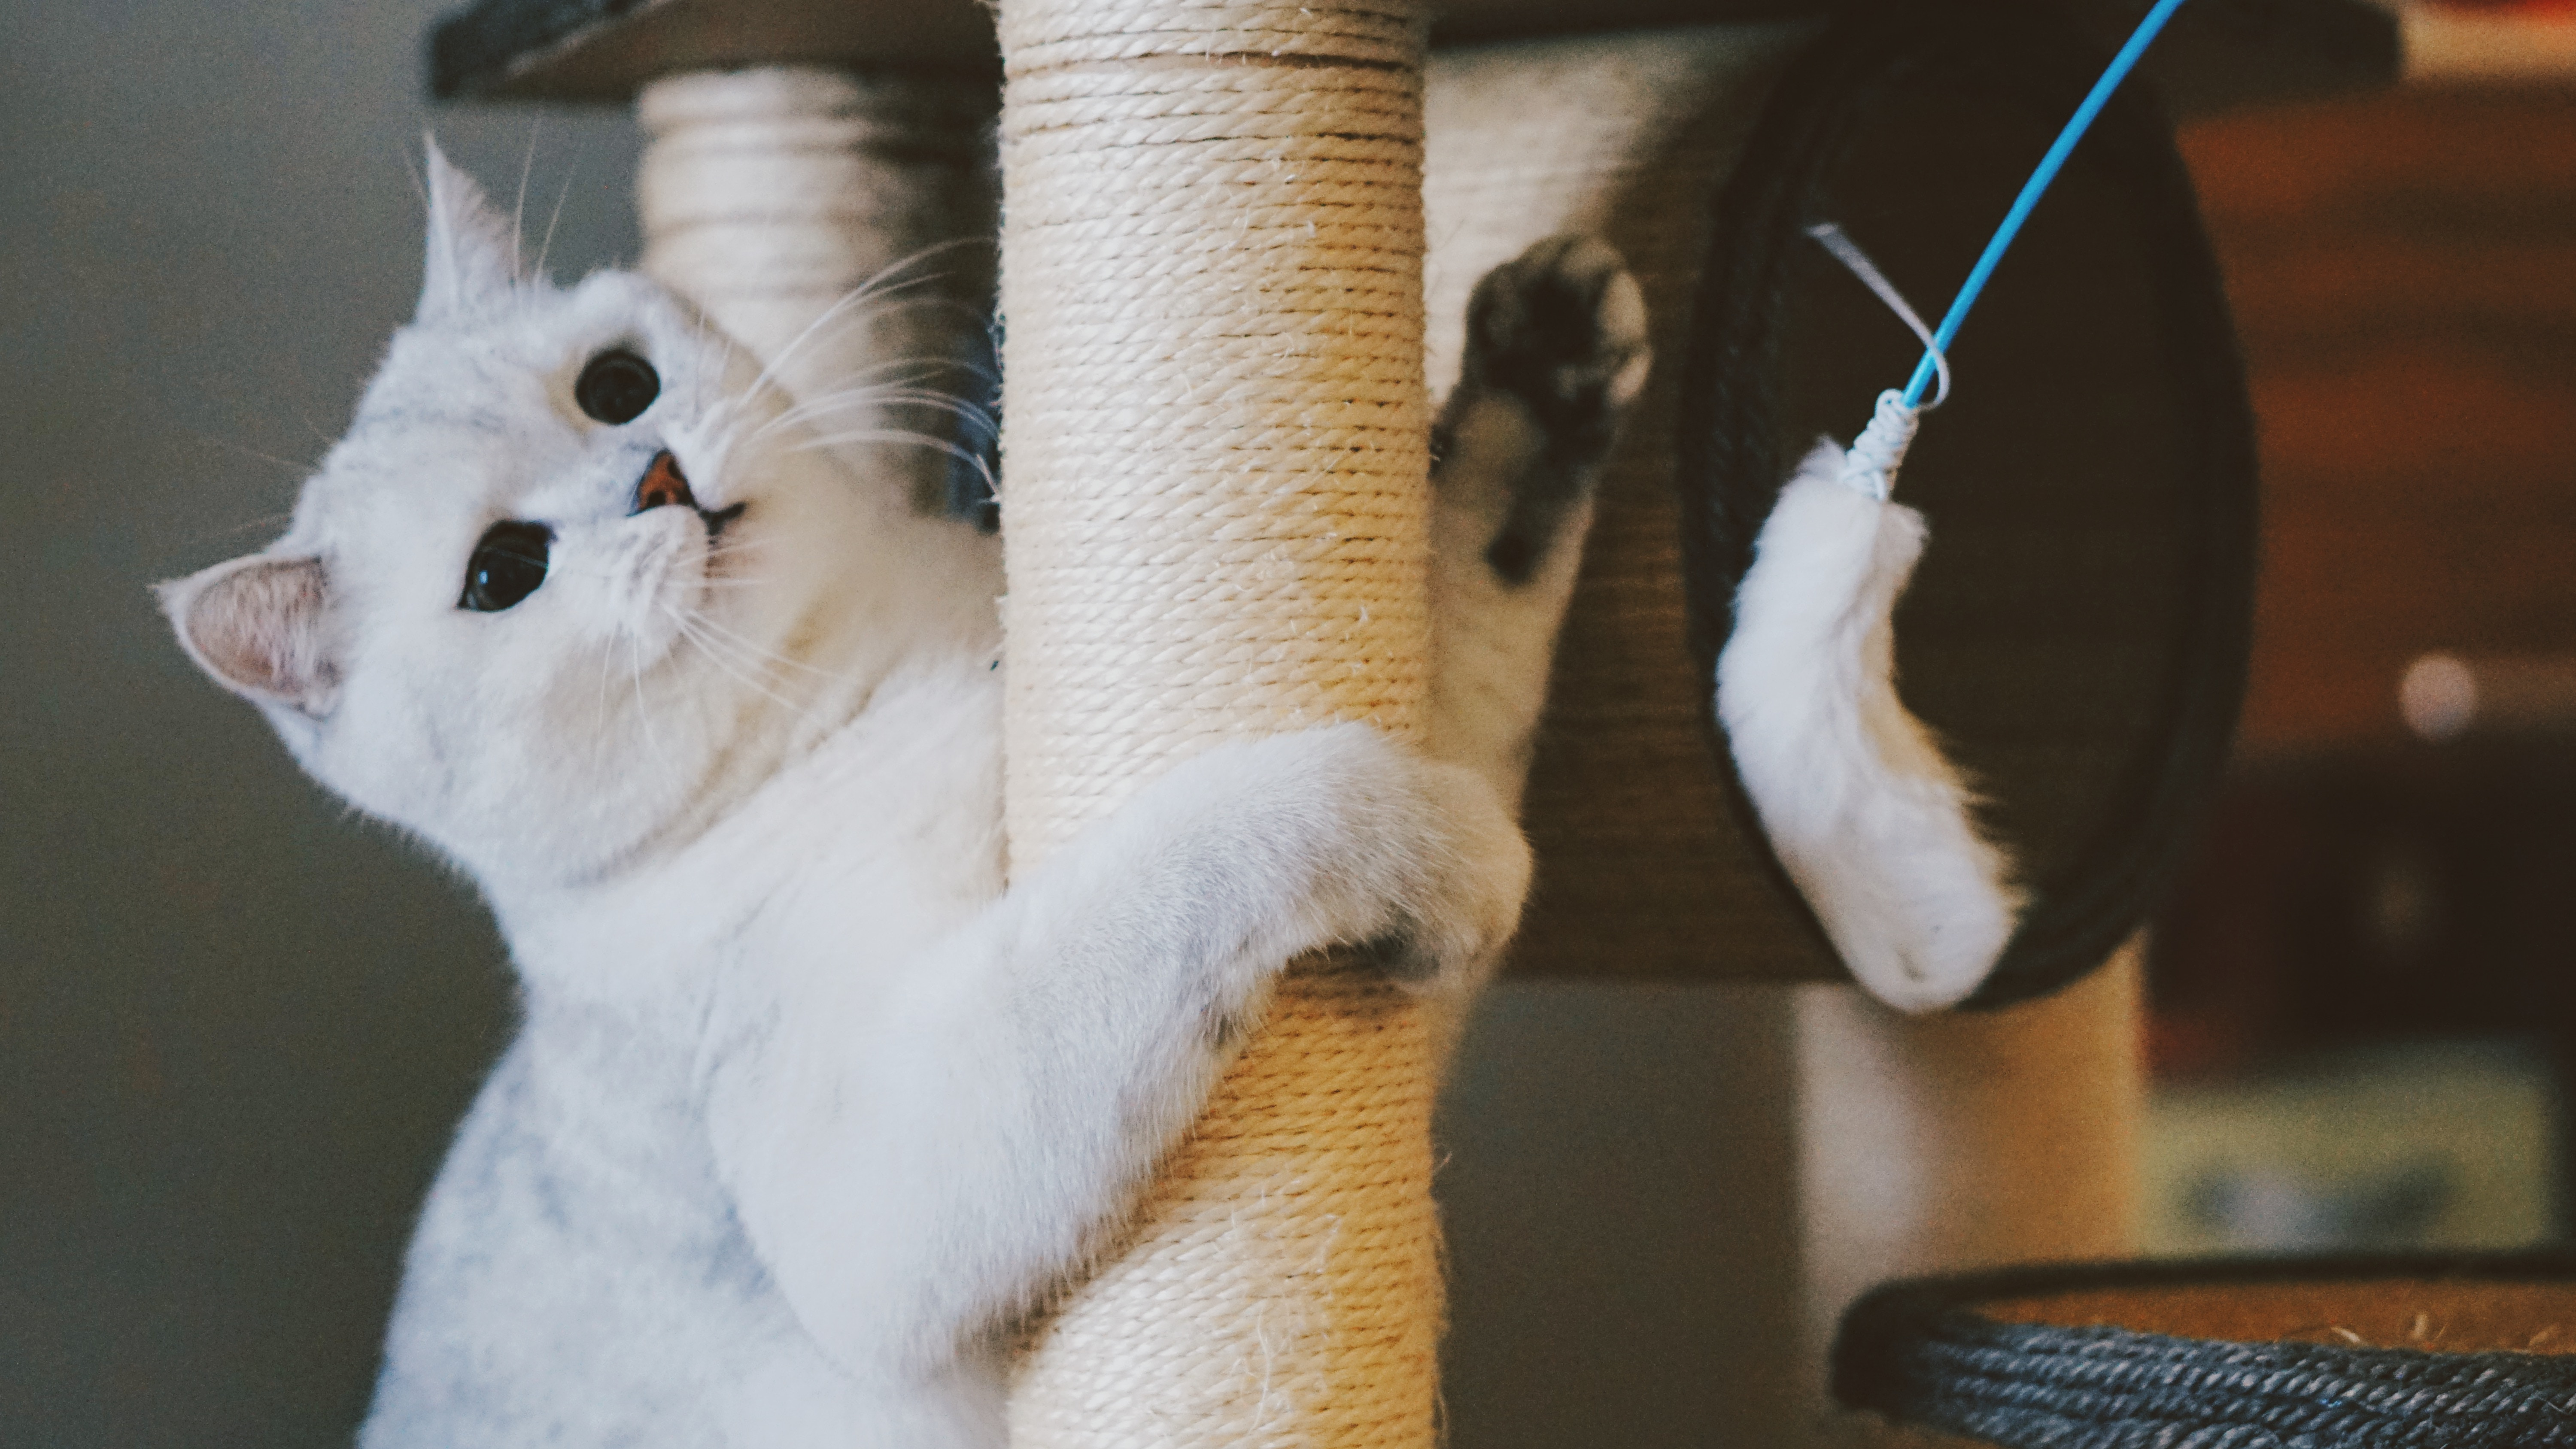 White cat plays with a feather toy